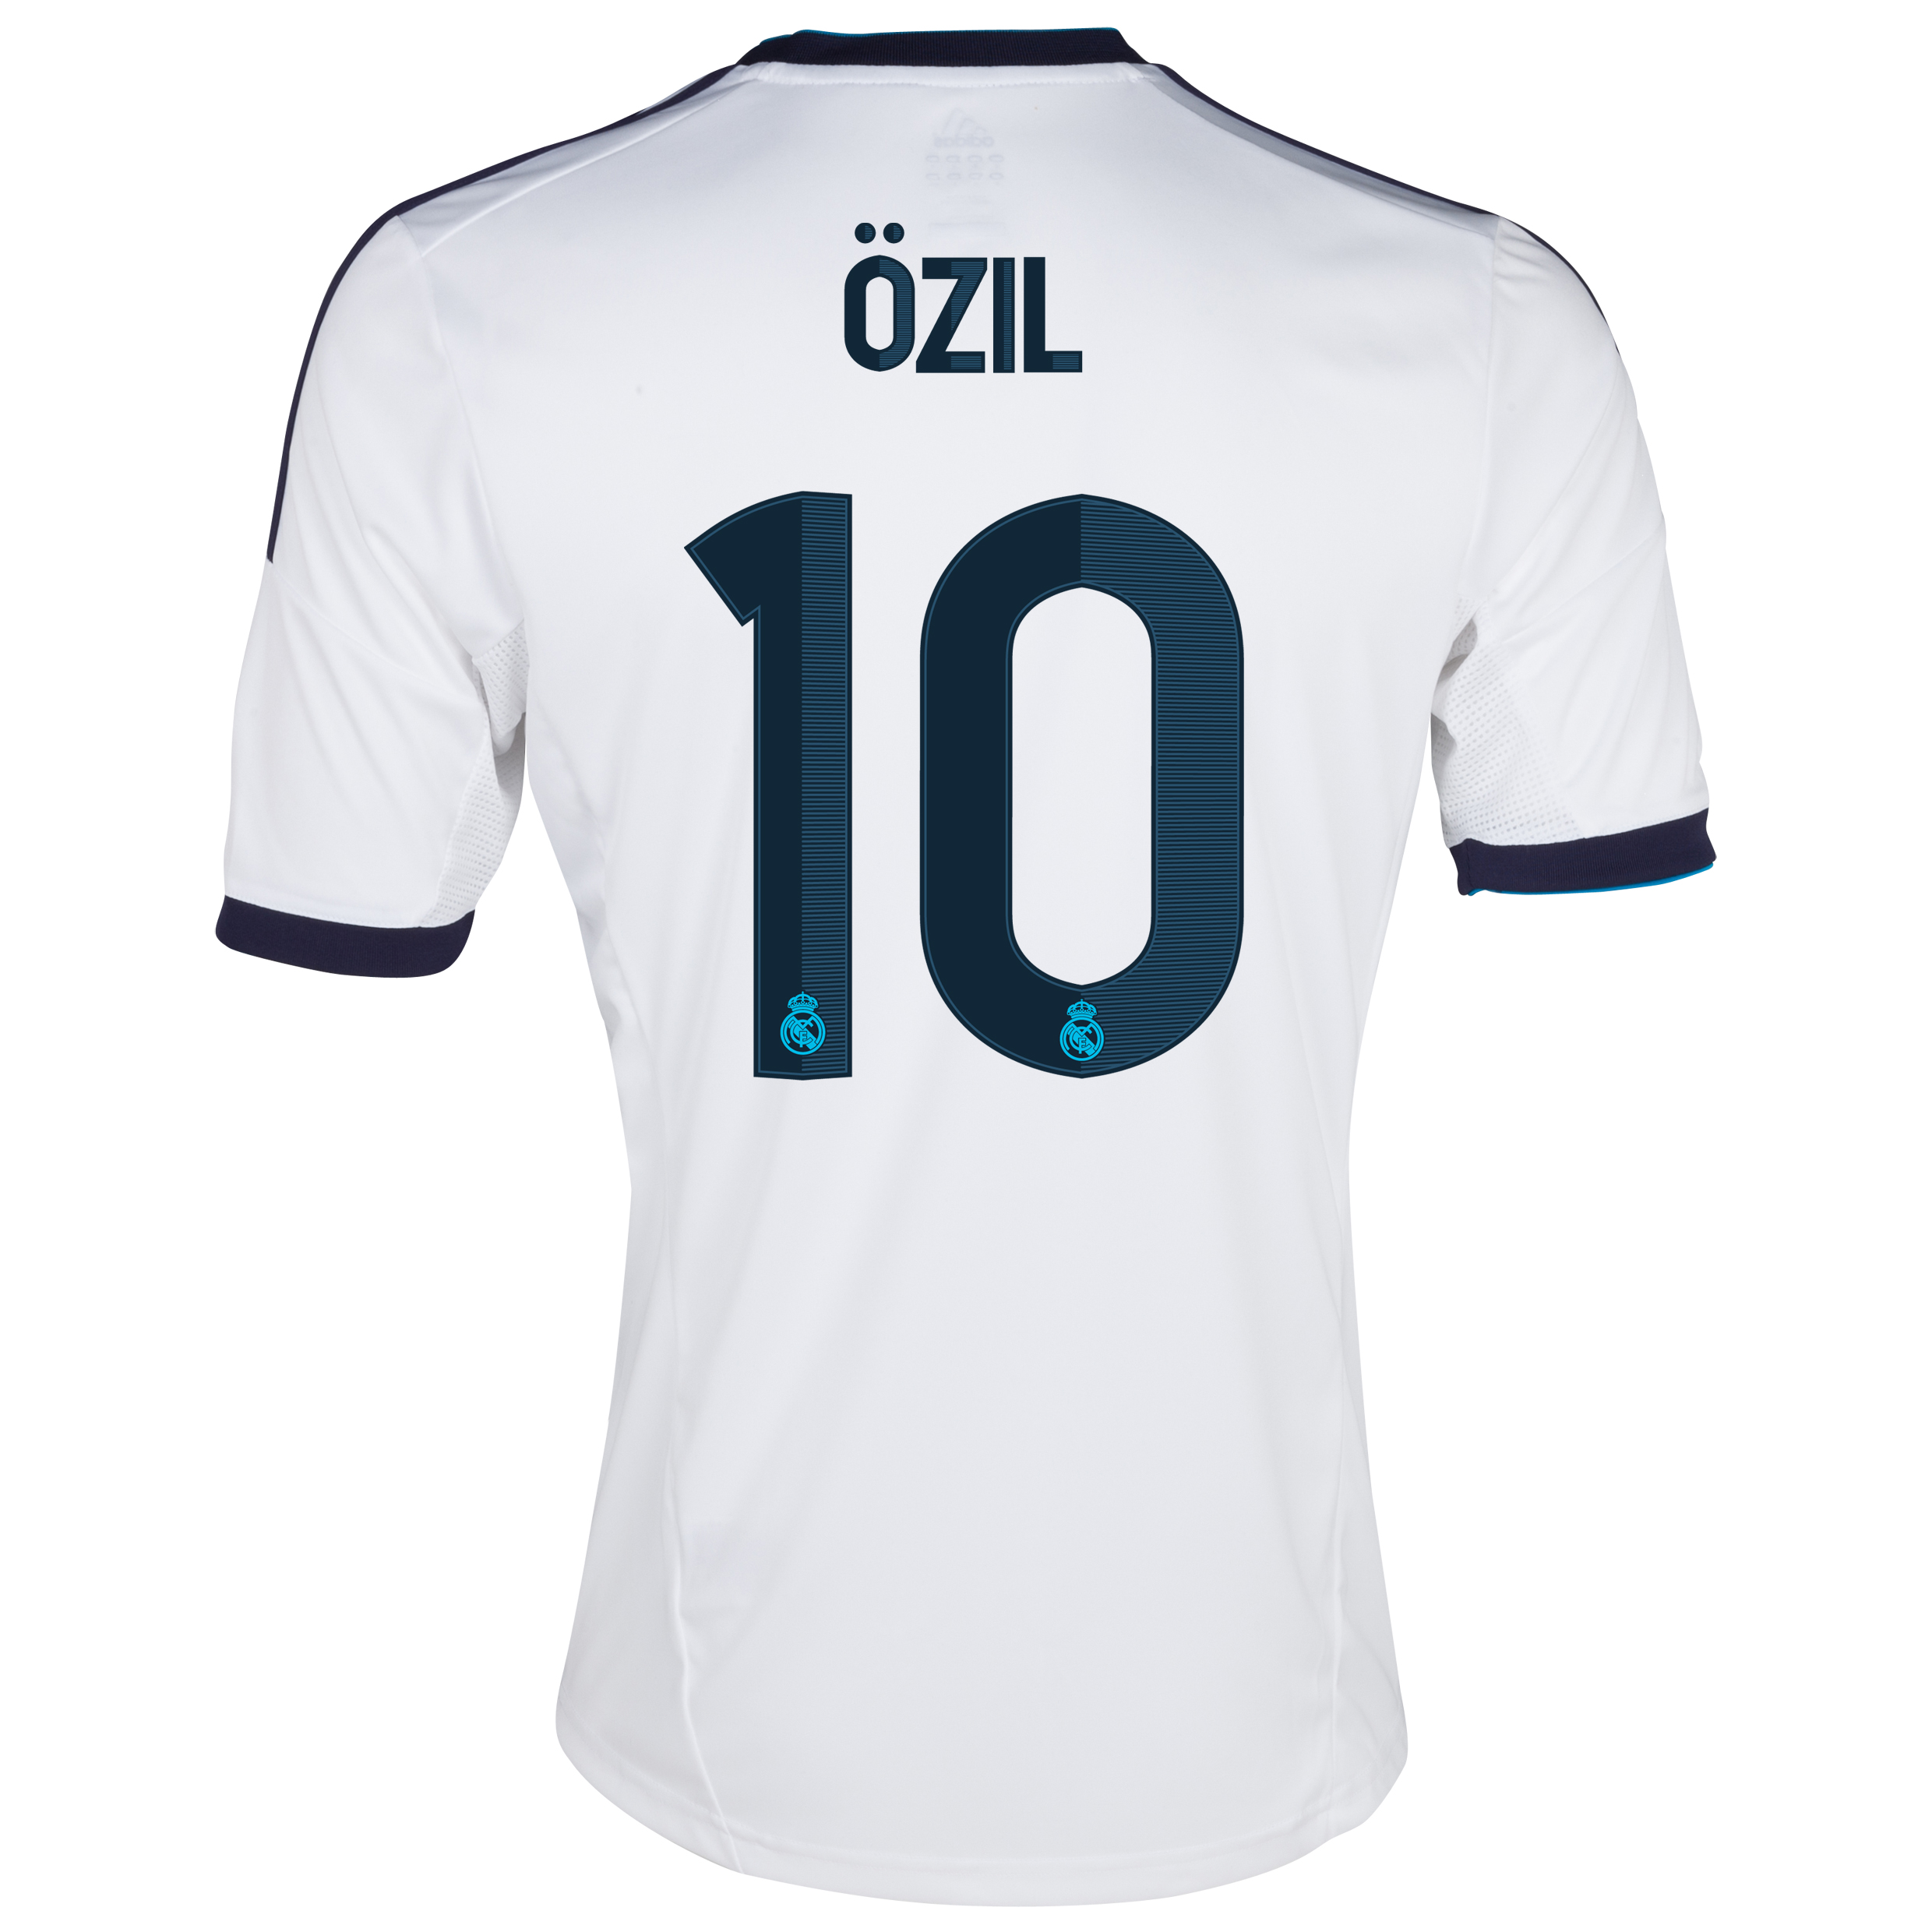 Real Madrid Home Shirt 2012/13 with zil 10 printing